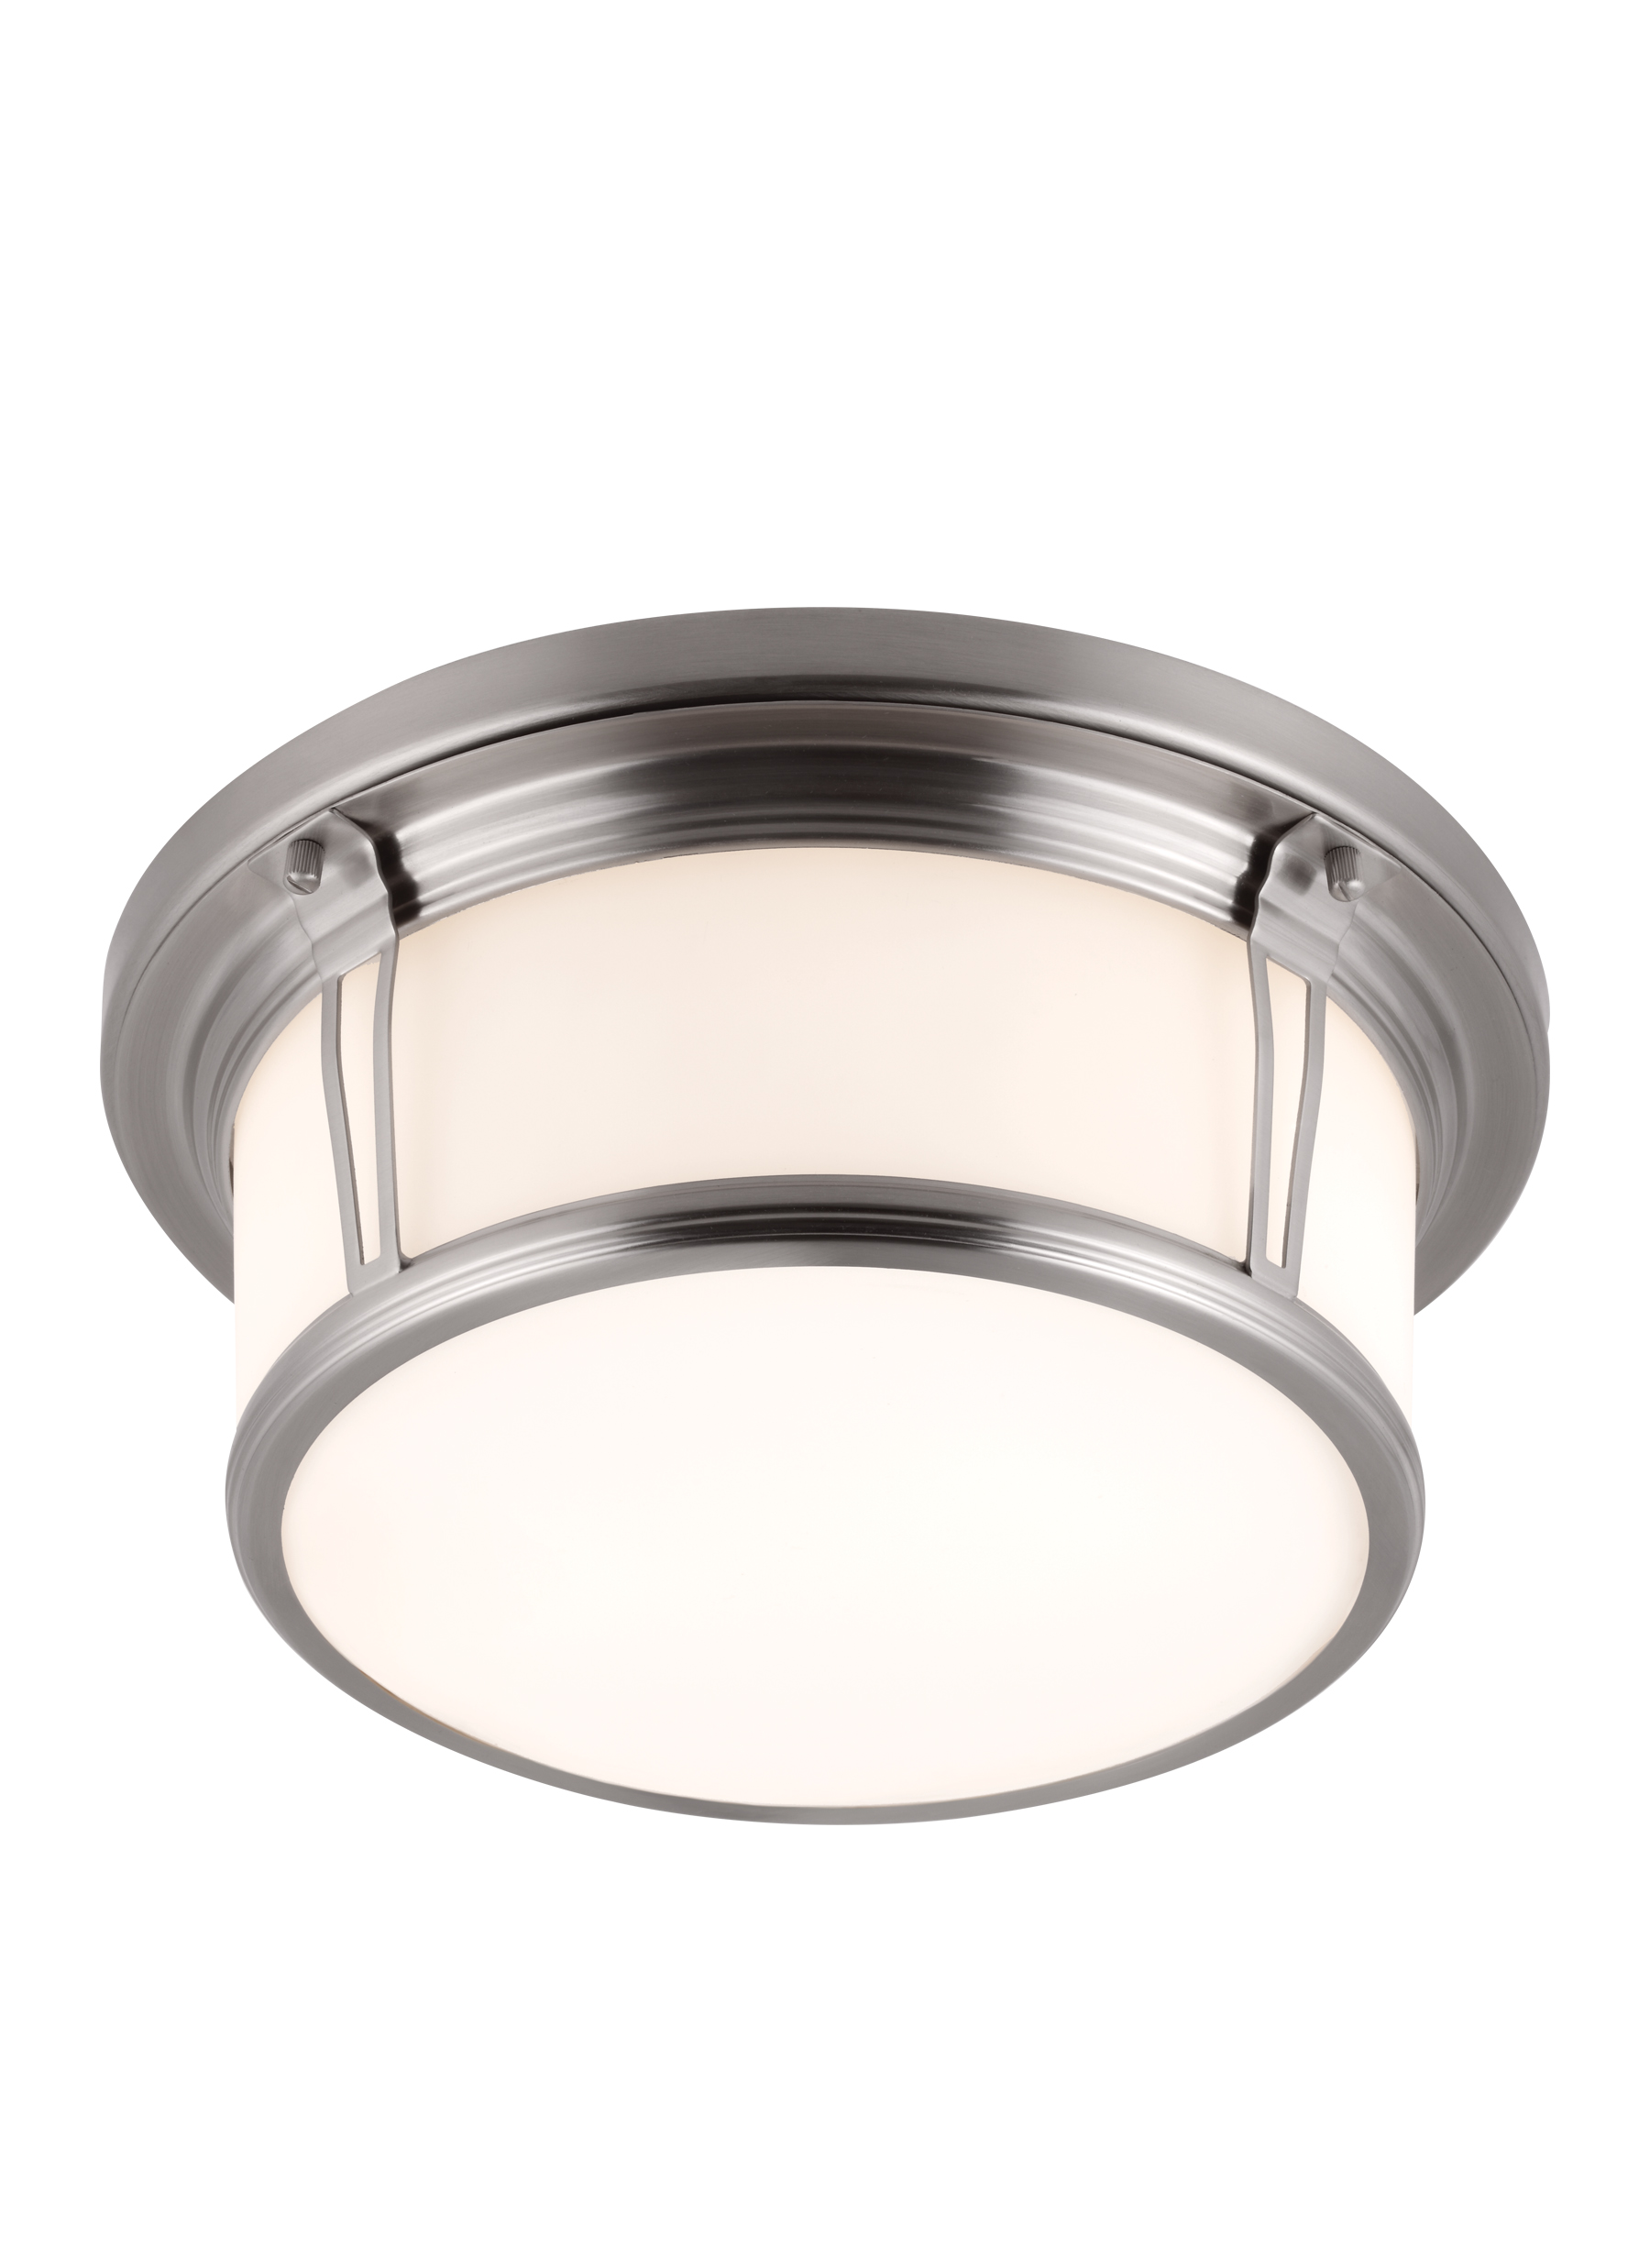 FM388BS 2 Light Woodward Flushmount Brushed Steel